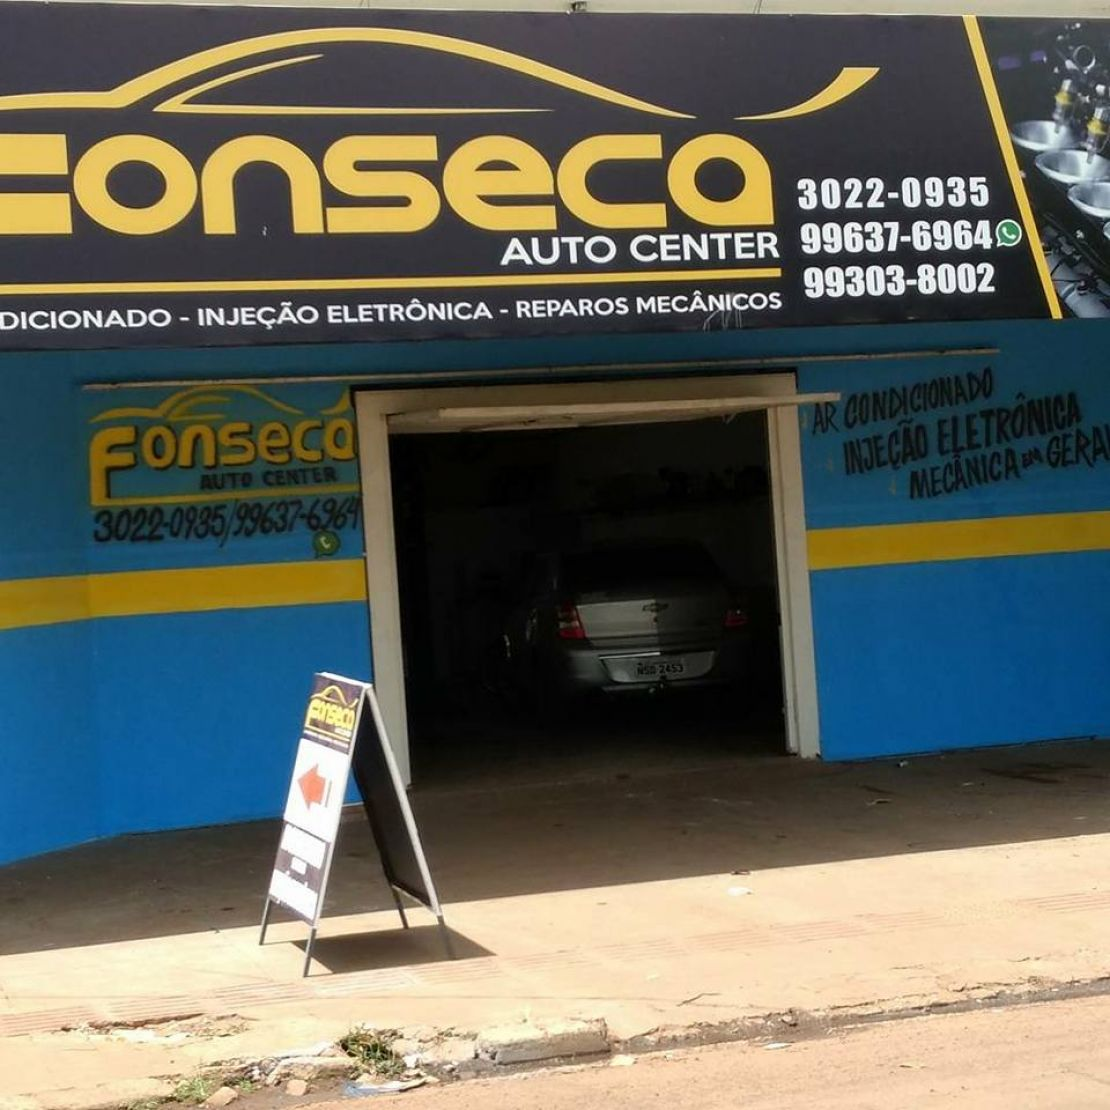 Fonseca Auto Center Foto 1